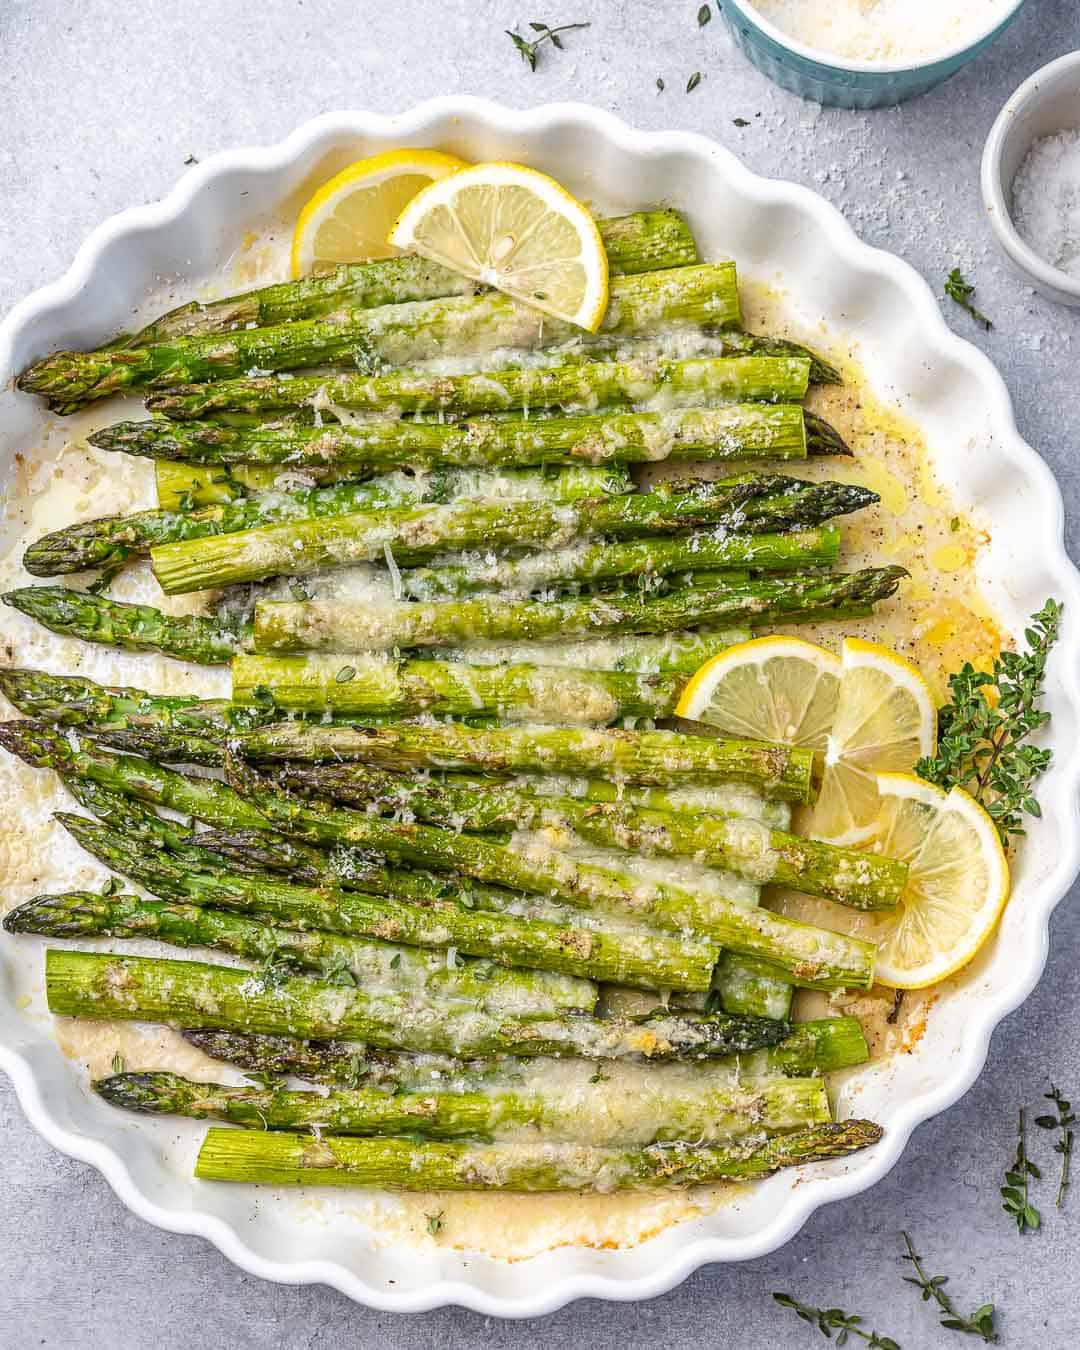 top view of baked asparagus in a white dish with lemon garnishes